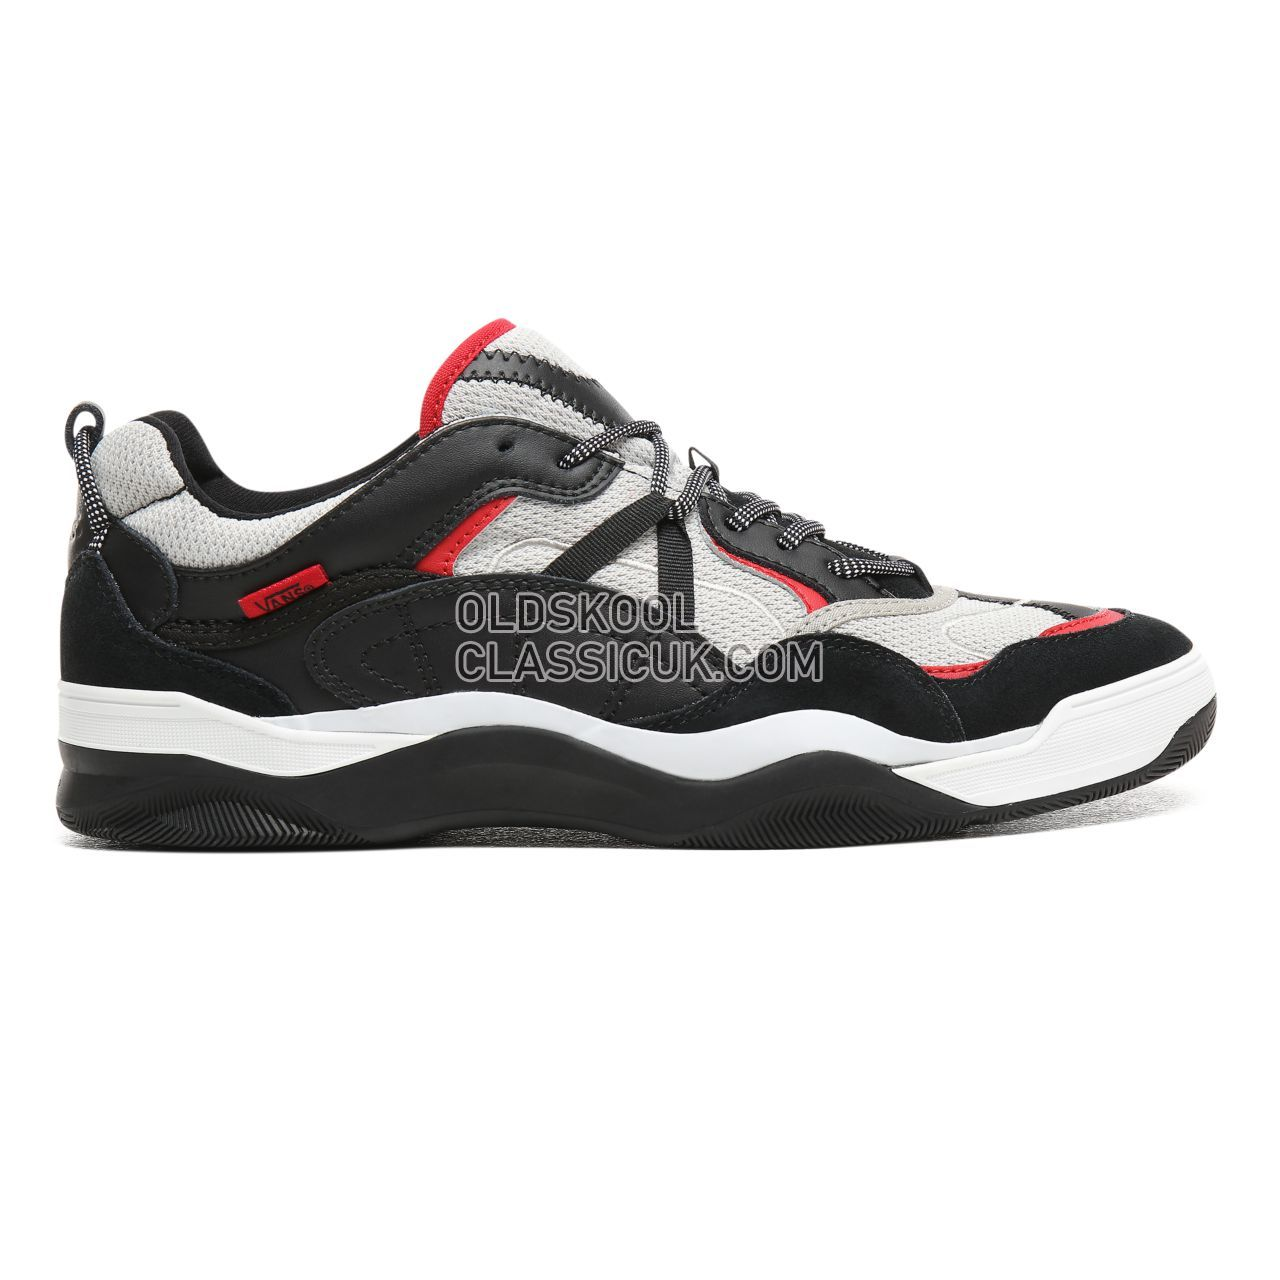 Vans Varix WC Sneakers Mens Black/Silver/Racing Red VN0A3WLNT48 Shoes